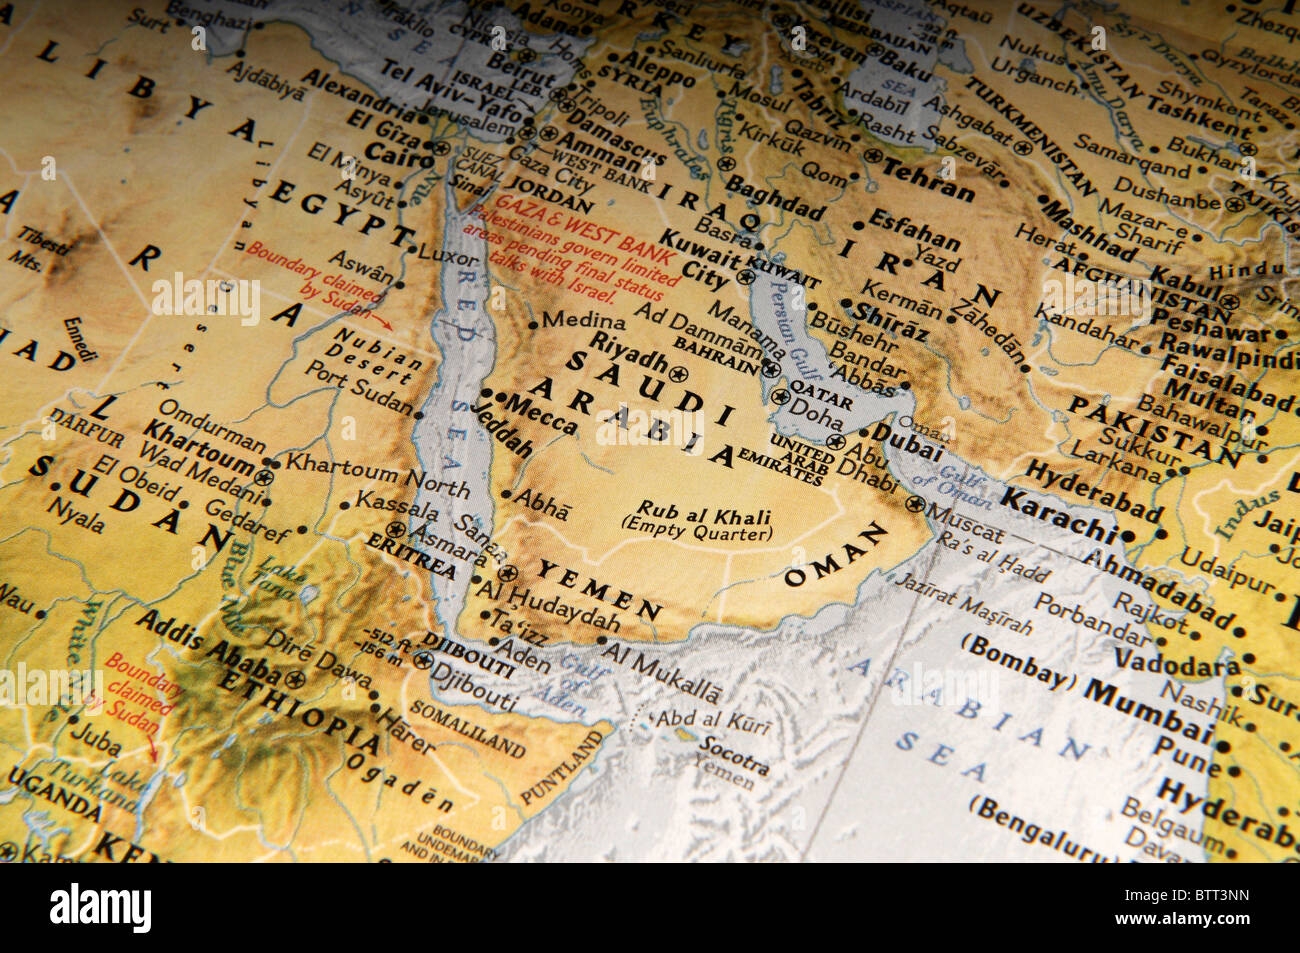 Map of Middle East - Stock Image